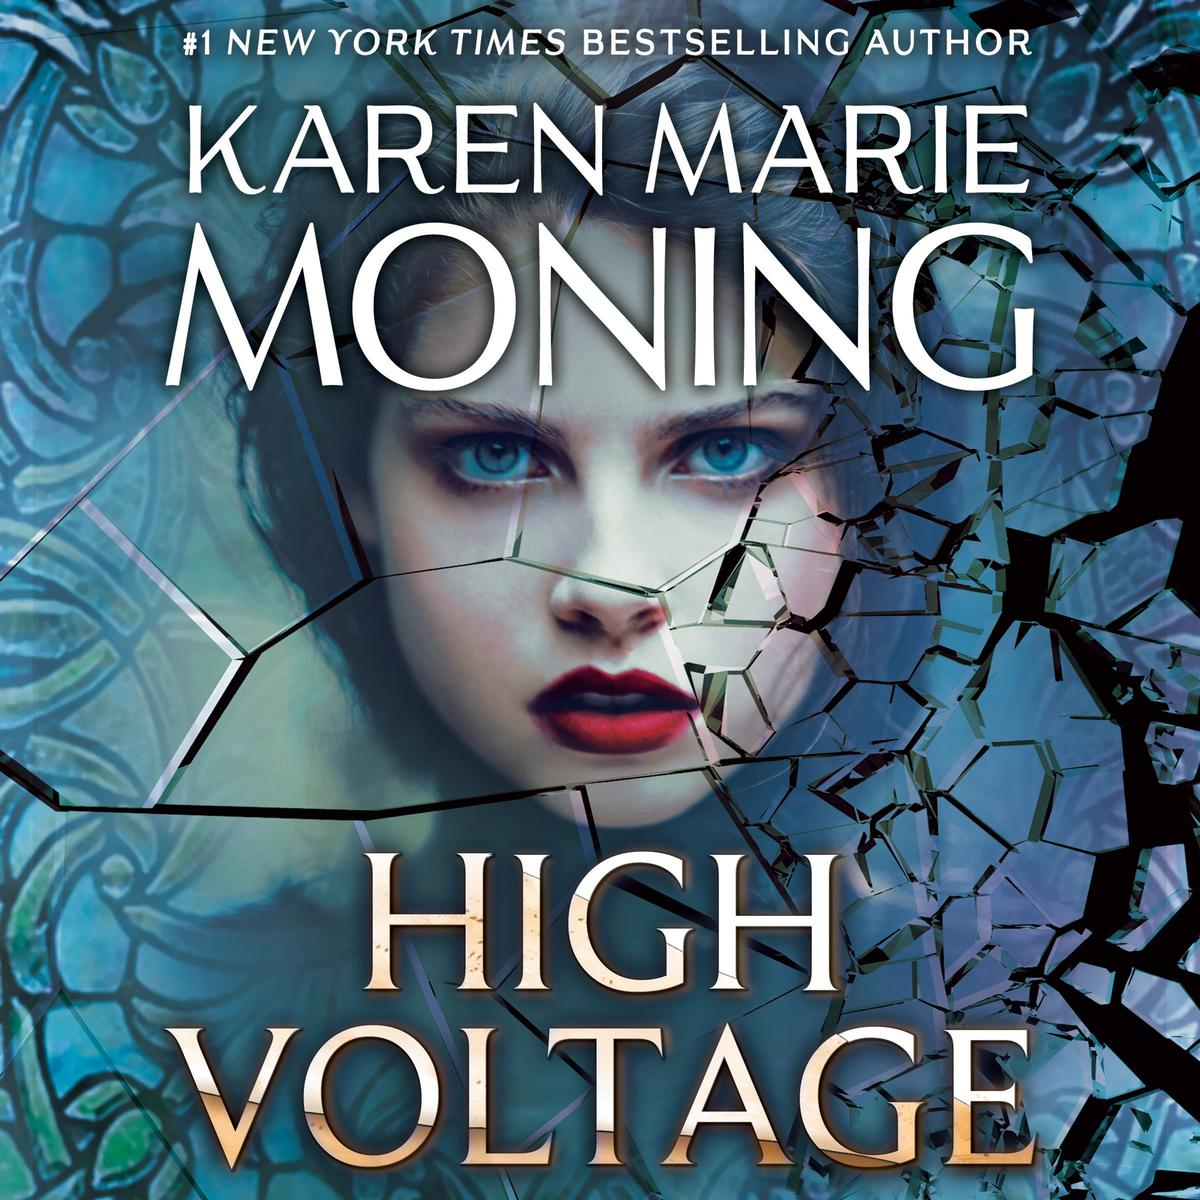 High Voltage - Audiobook